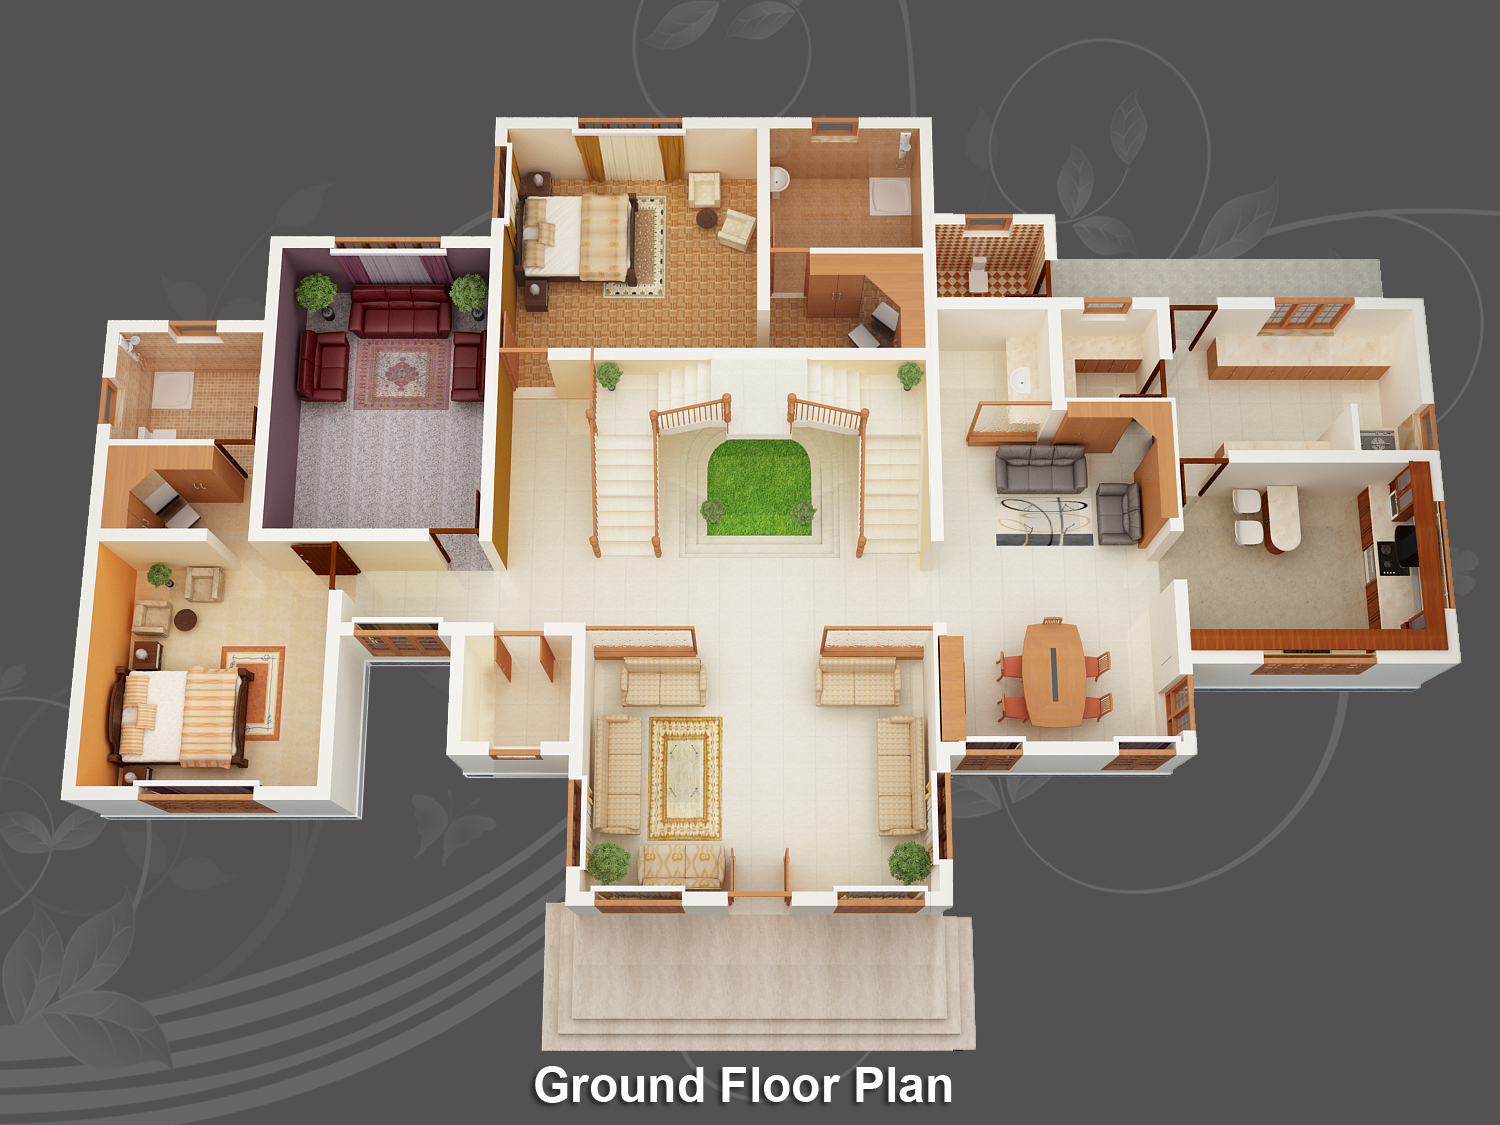 Evens construction pvt ltd 3d house plan 20 05 2011 House designer 3d